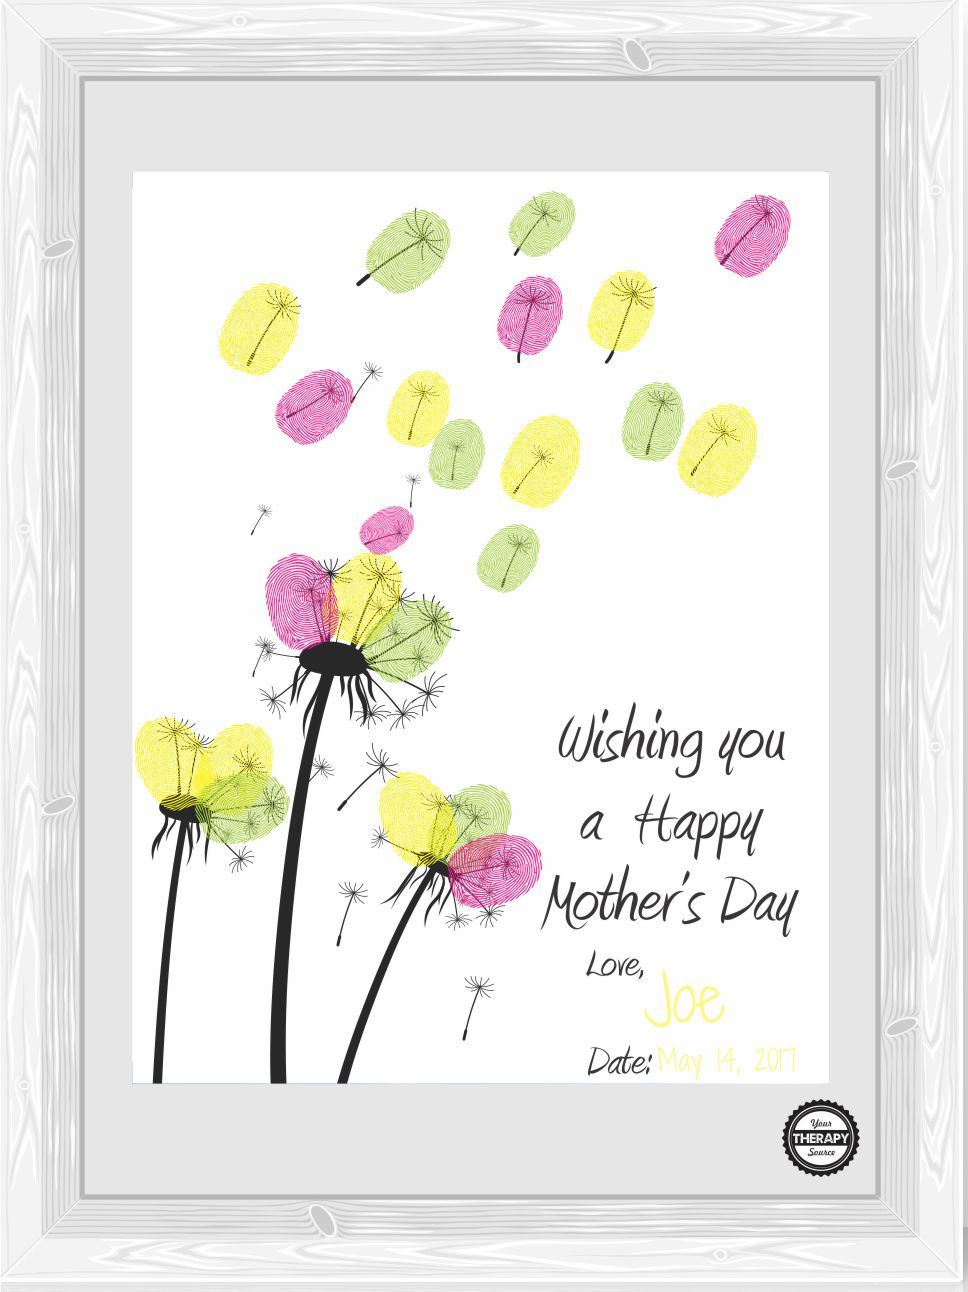 Wishing You A Happy Mother S Day Fingerprint Craft Your Therapy Source In 2021 Mothers Day Cards Happy Mother S Day Card Mother Day Wishes